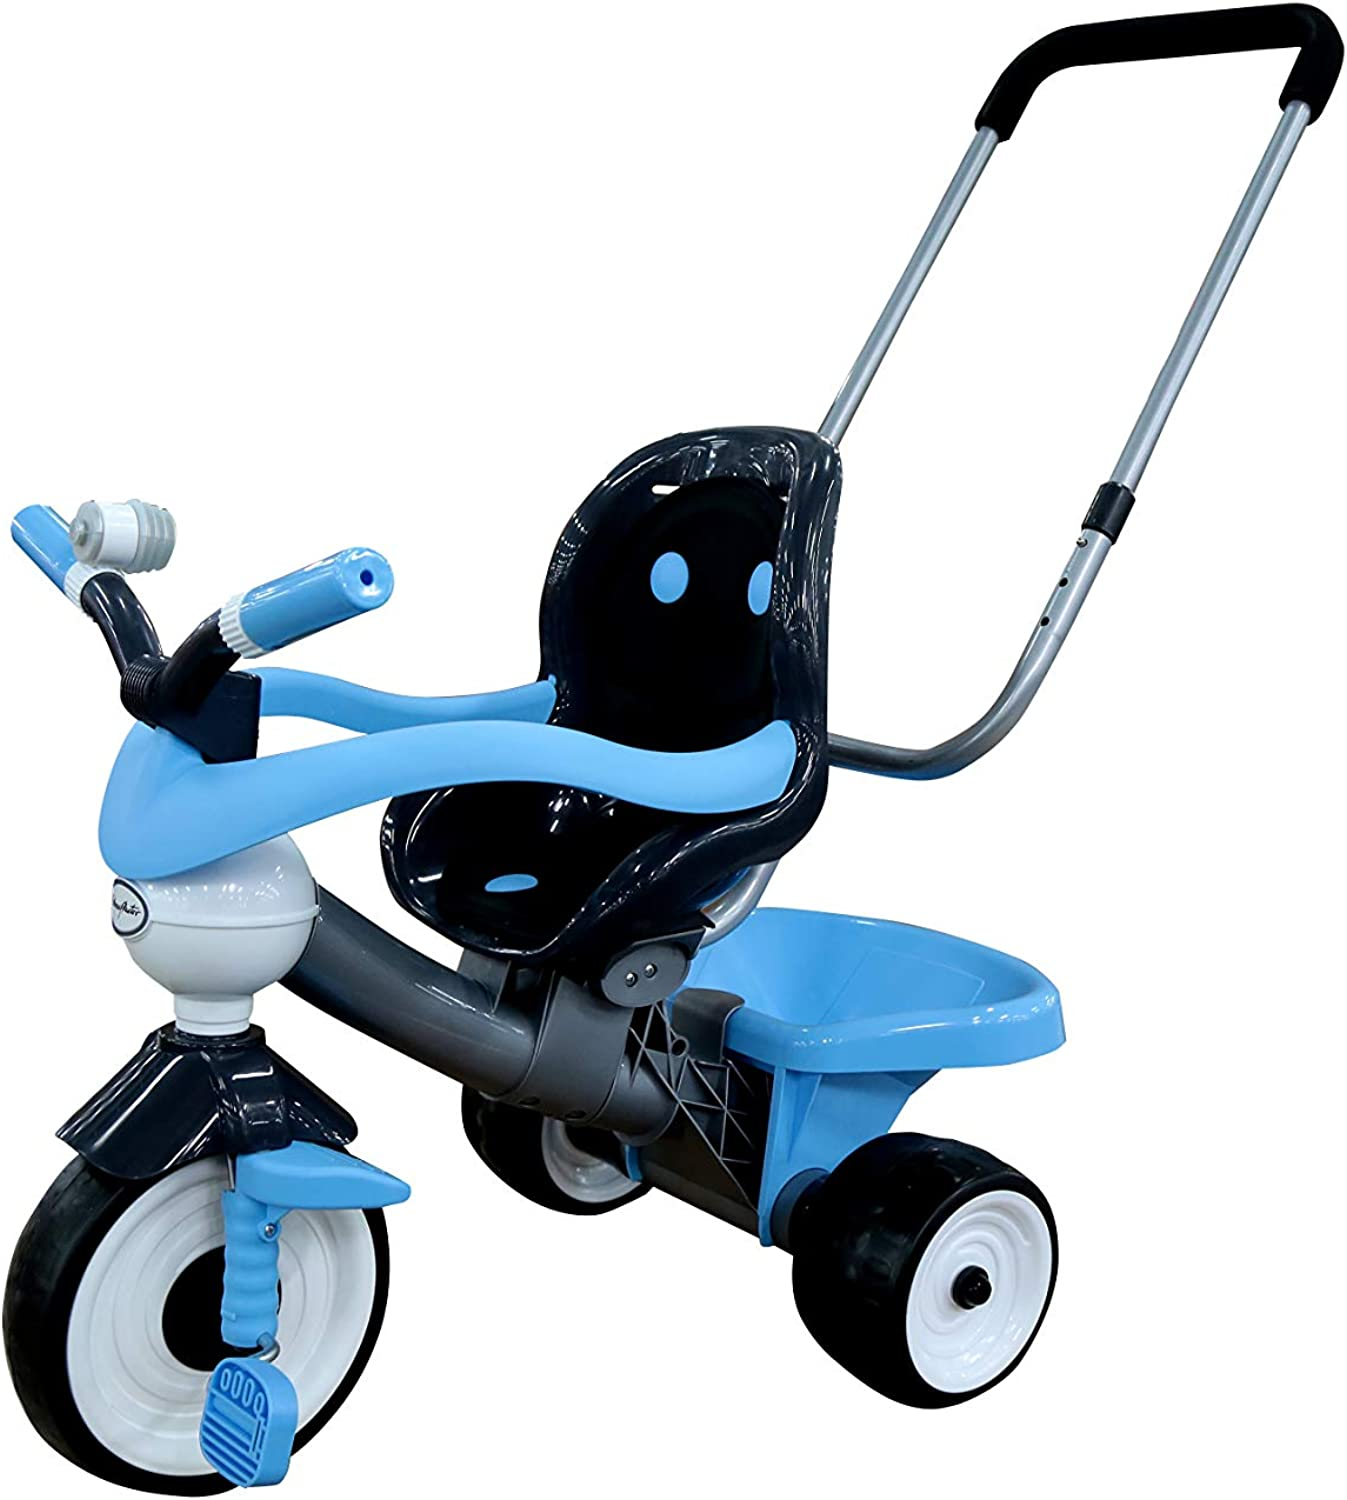 Polesie Polesie46826 Comfort 2 Tricycle W. Bar, Bellows, Handle and CushionTricycles & RideOns, Multi Colour